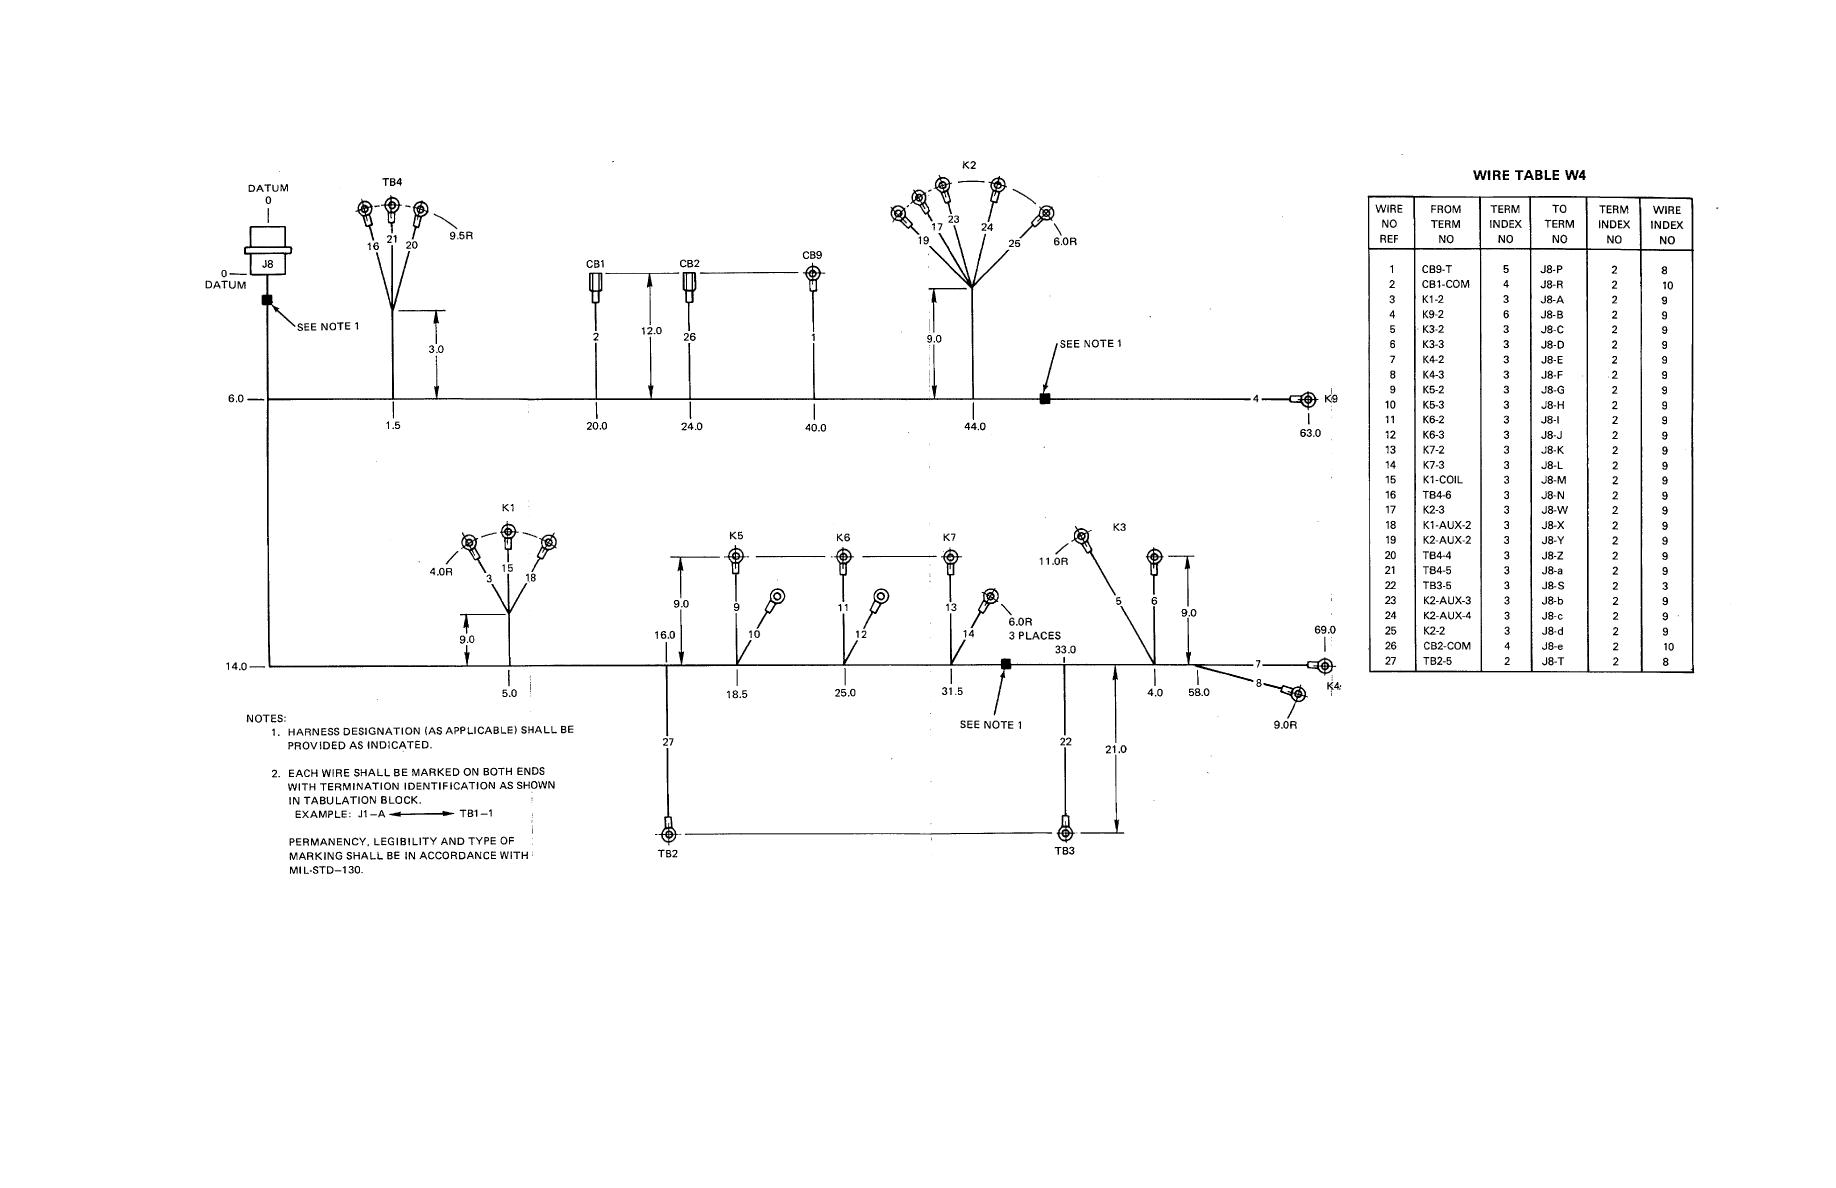 silverado junction box diagram  silverado  free engine